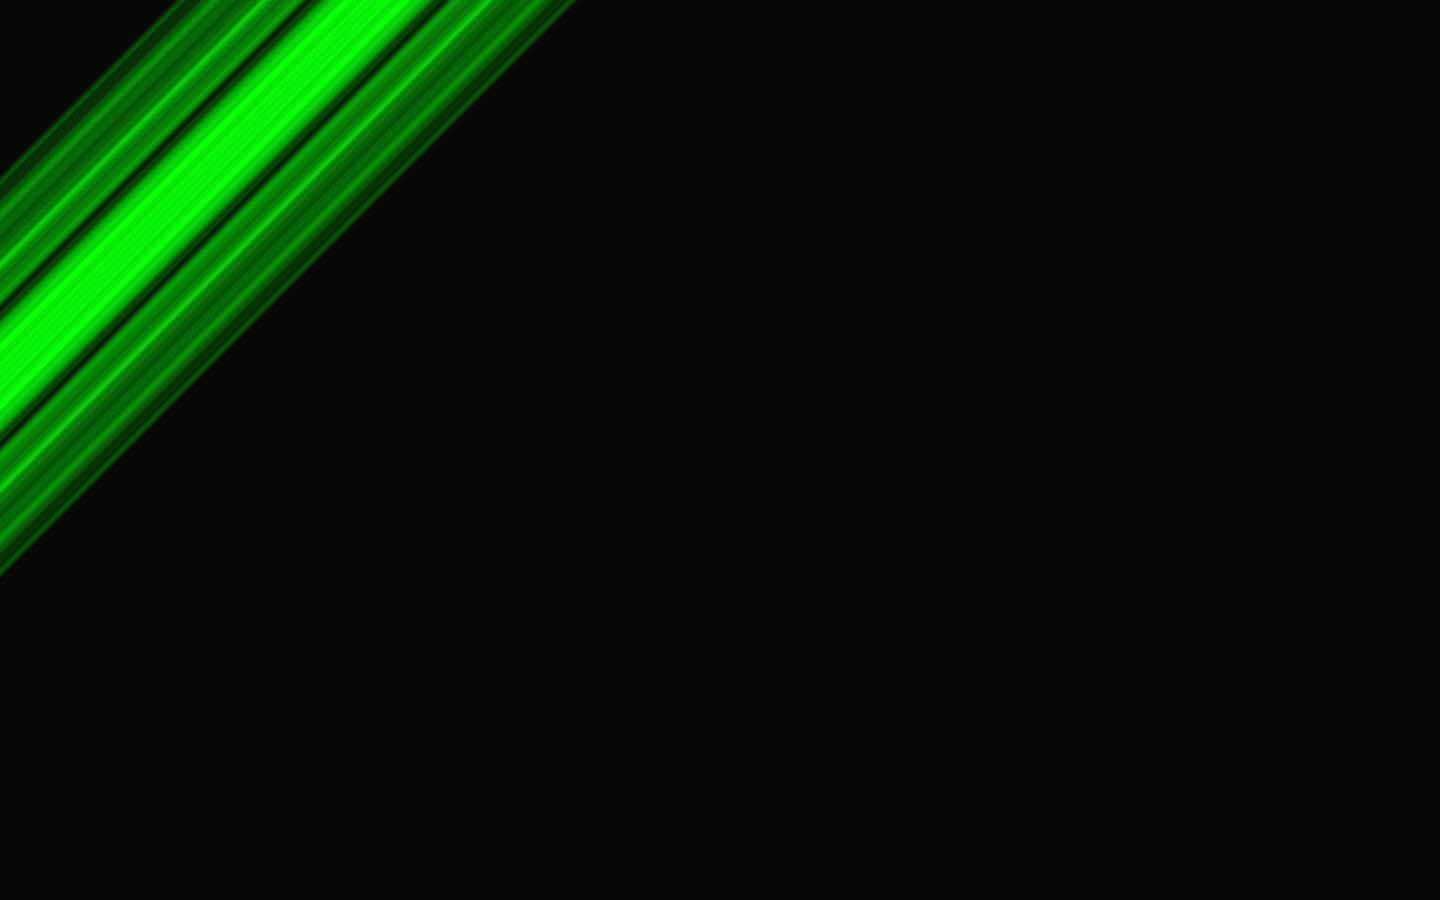 1440x900 Black And Green Backgrounds